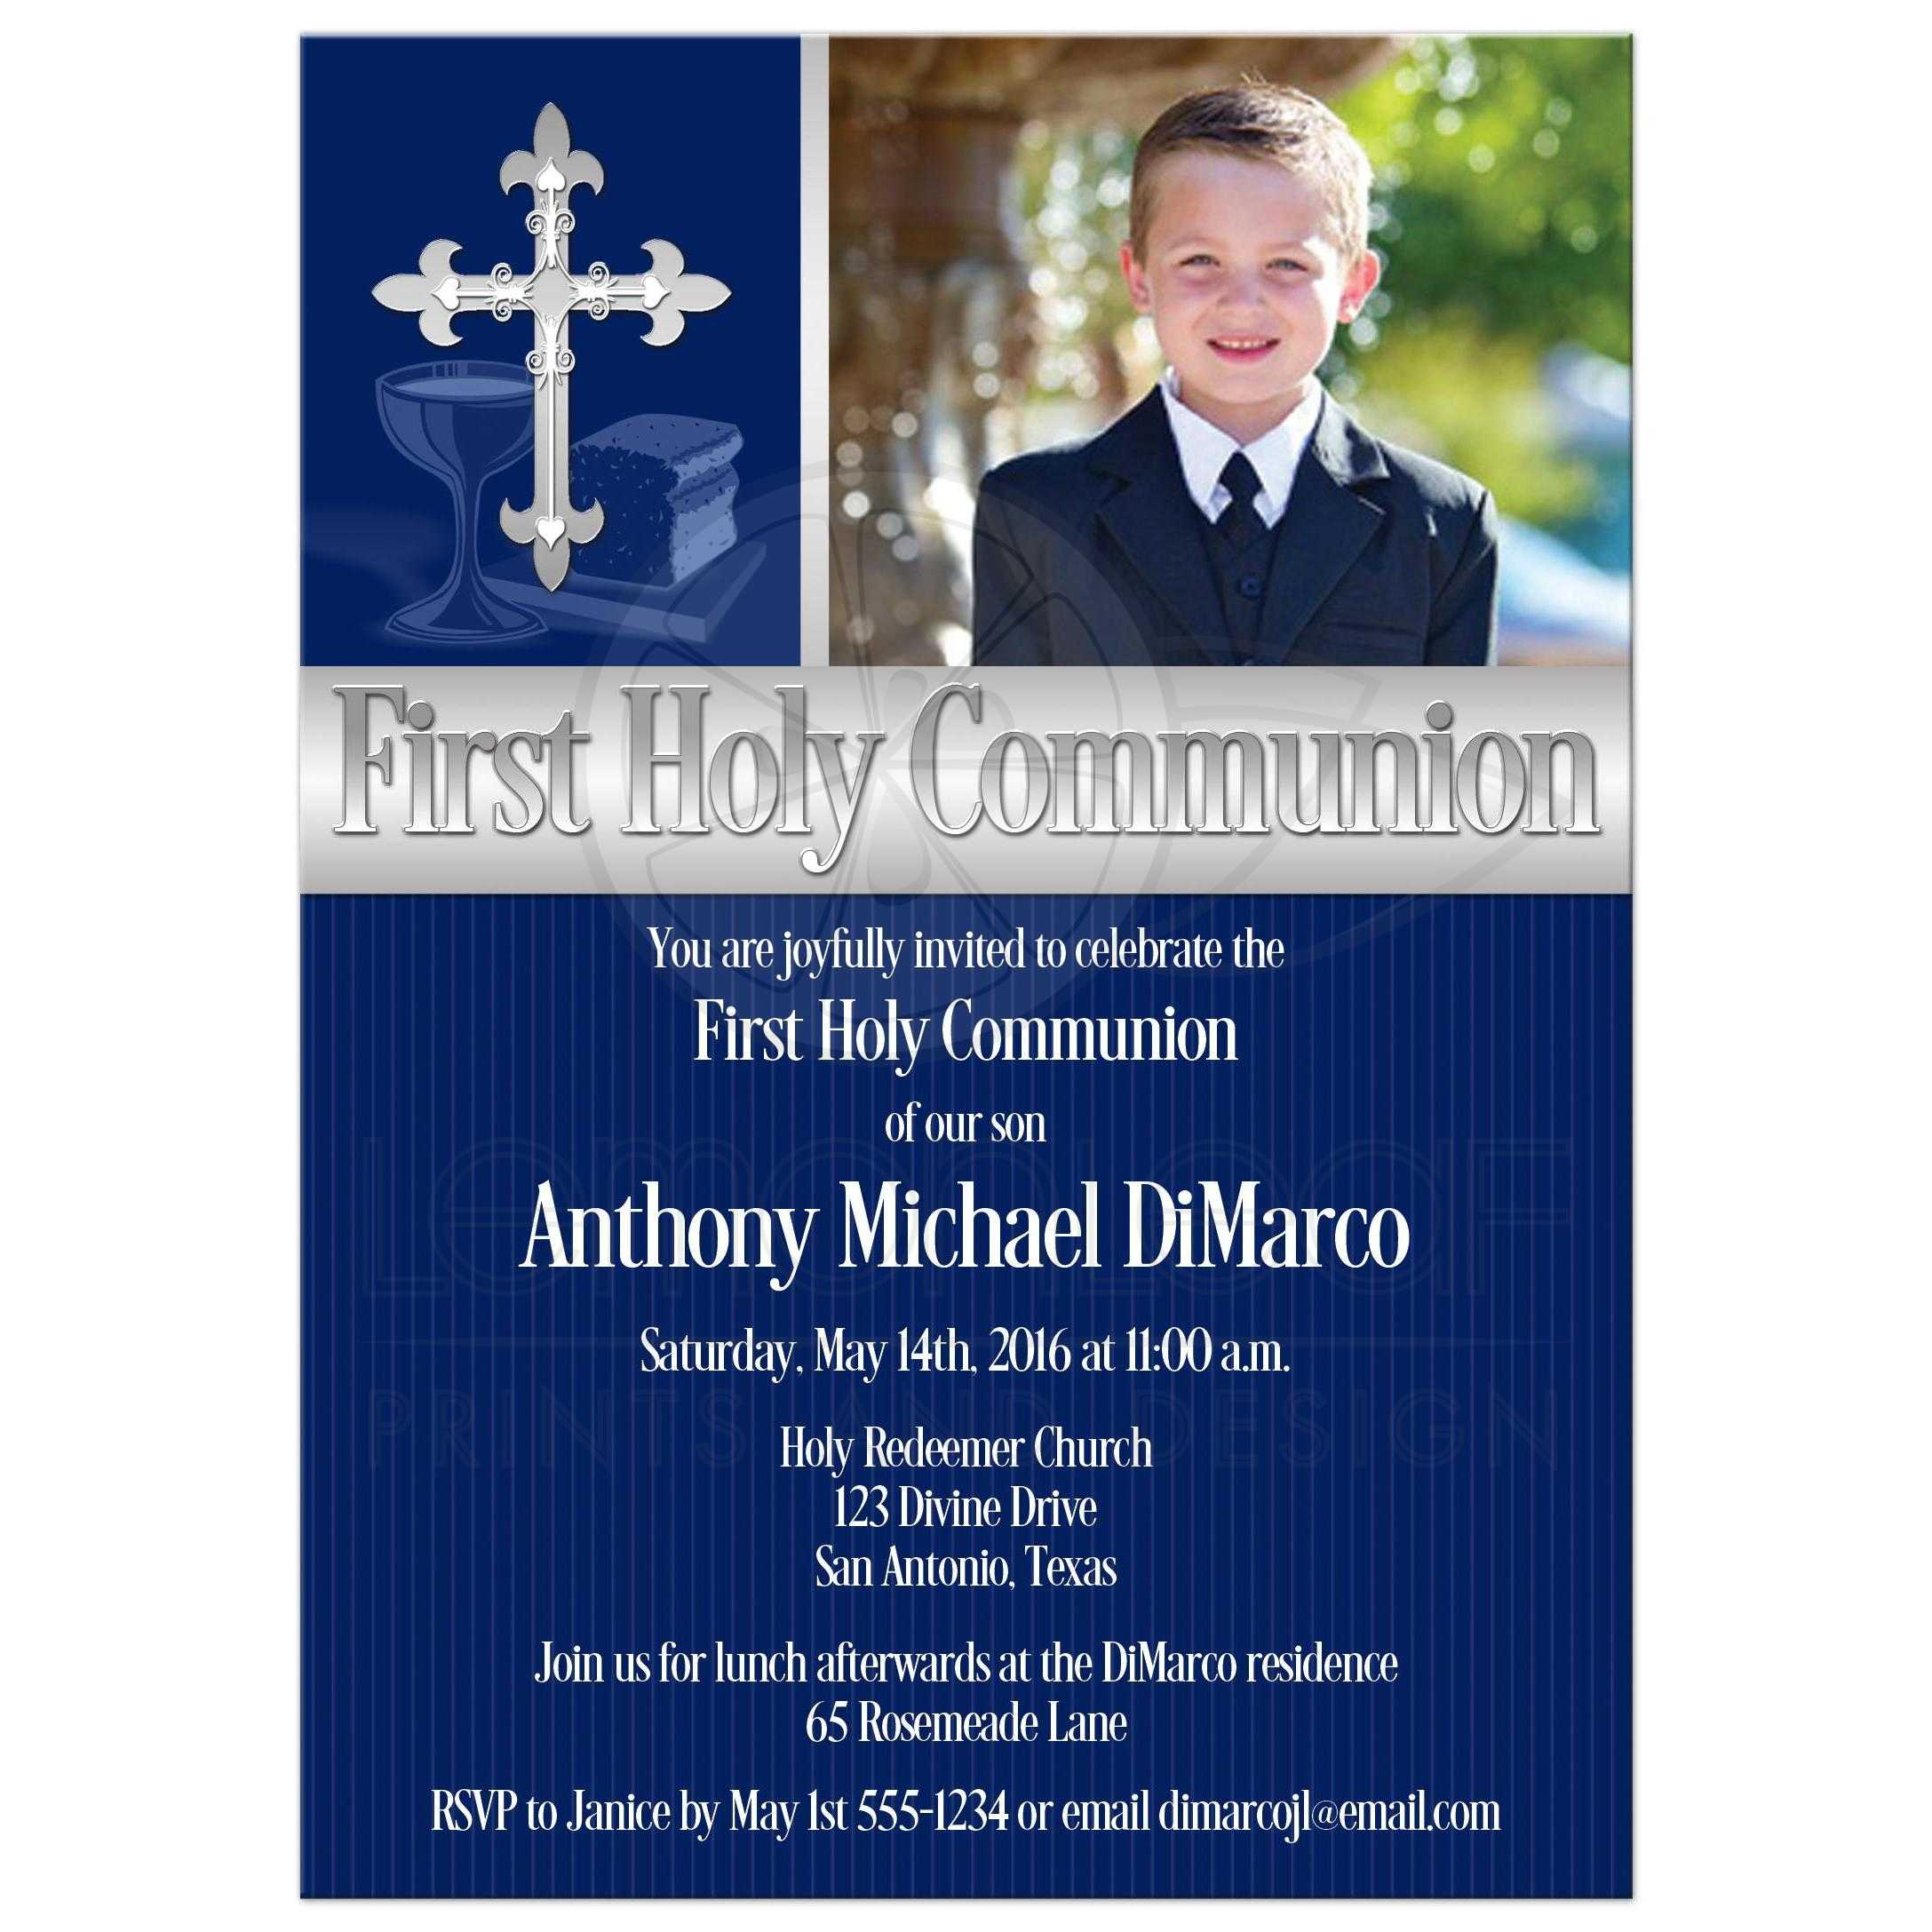 First Holy Communion Invitation | Photo Template | Navy ...